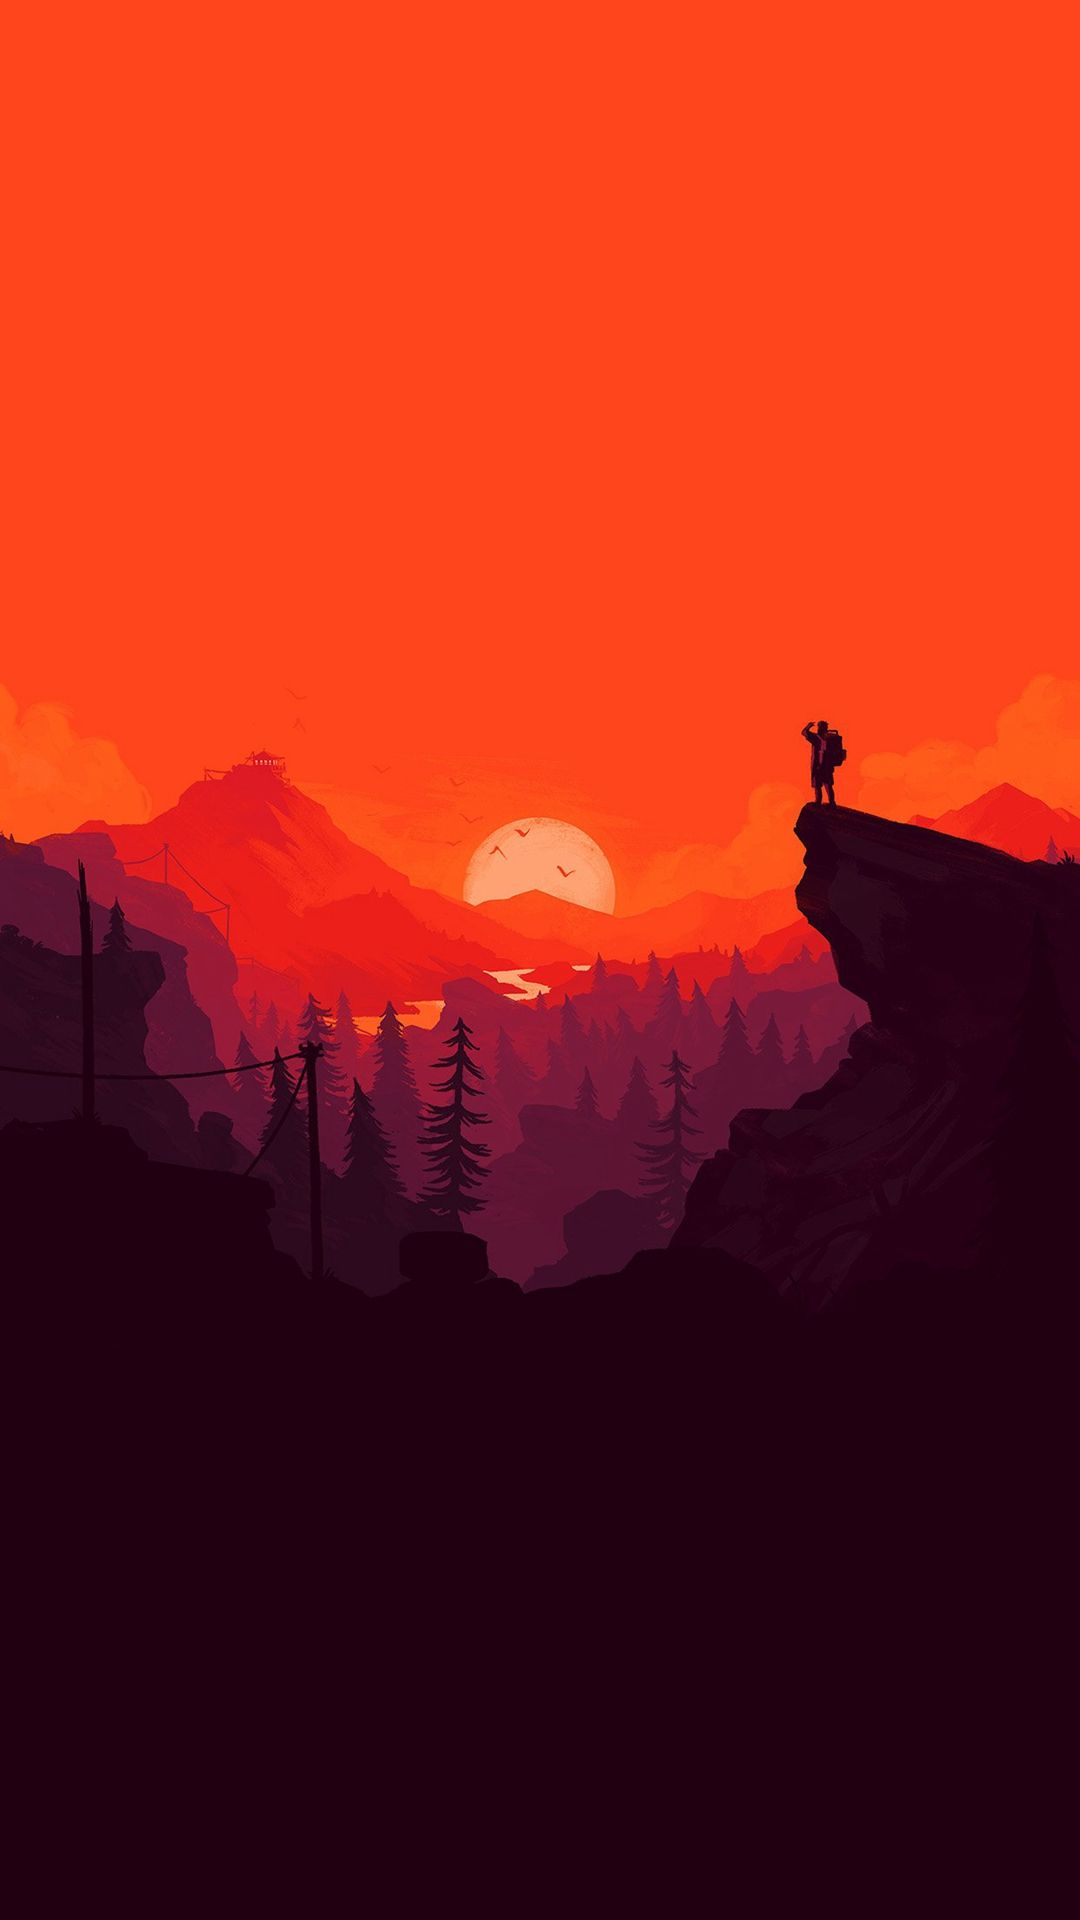 Nature Sunset Simple Minimal Illustration Art Red iPhone 8 Wallpapers